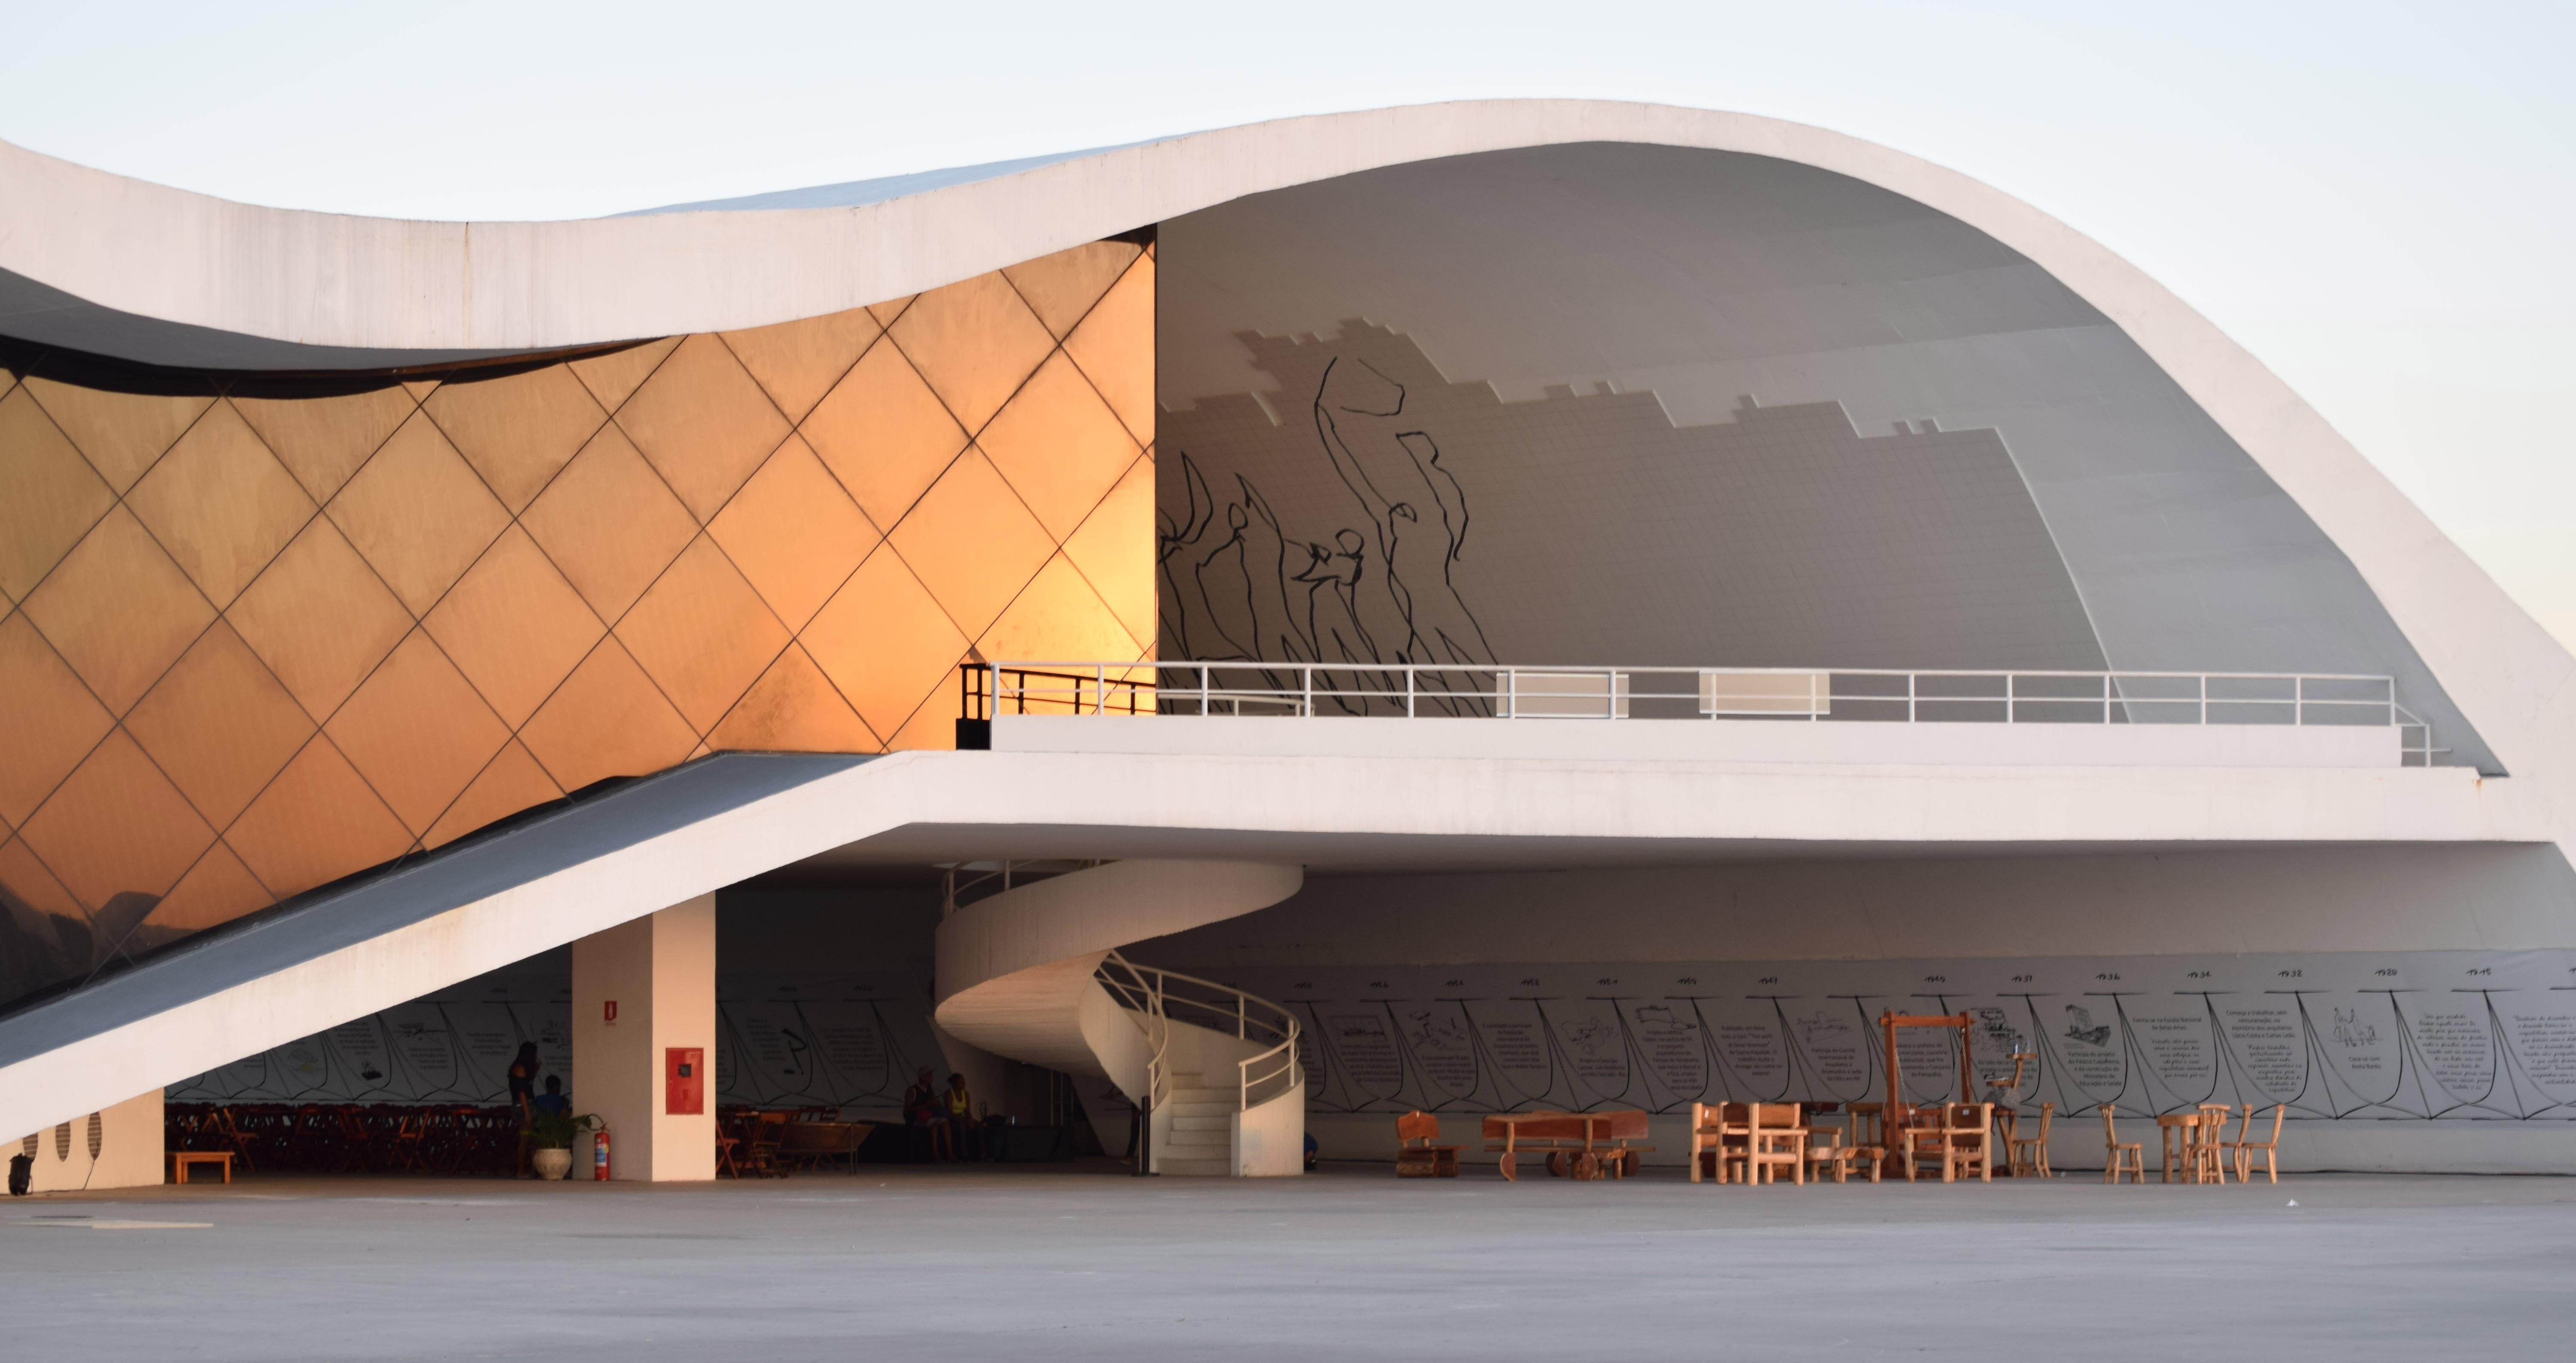 dac8cd4b369057 Photos of Teatro Popular Oscar Niemeyer - Images